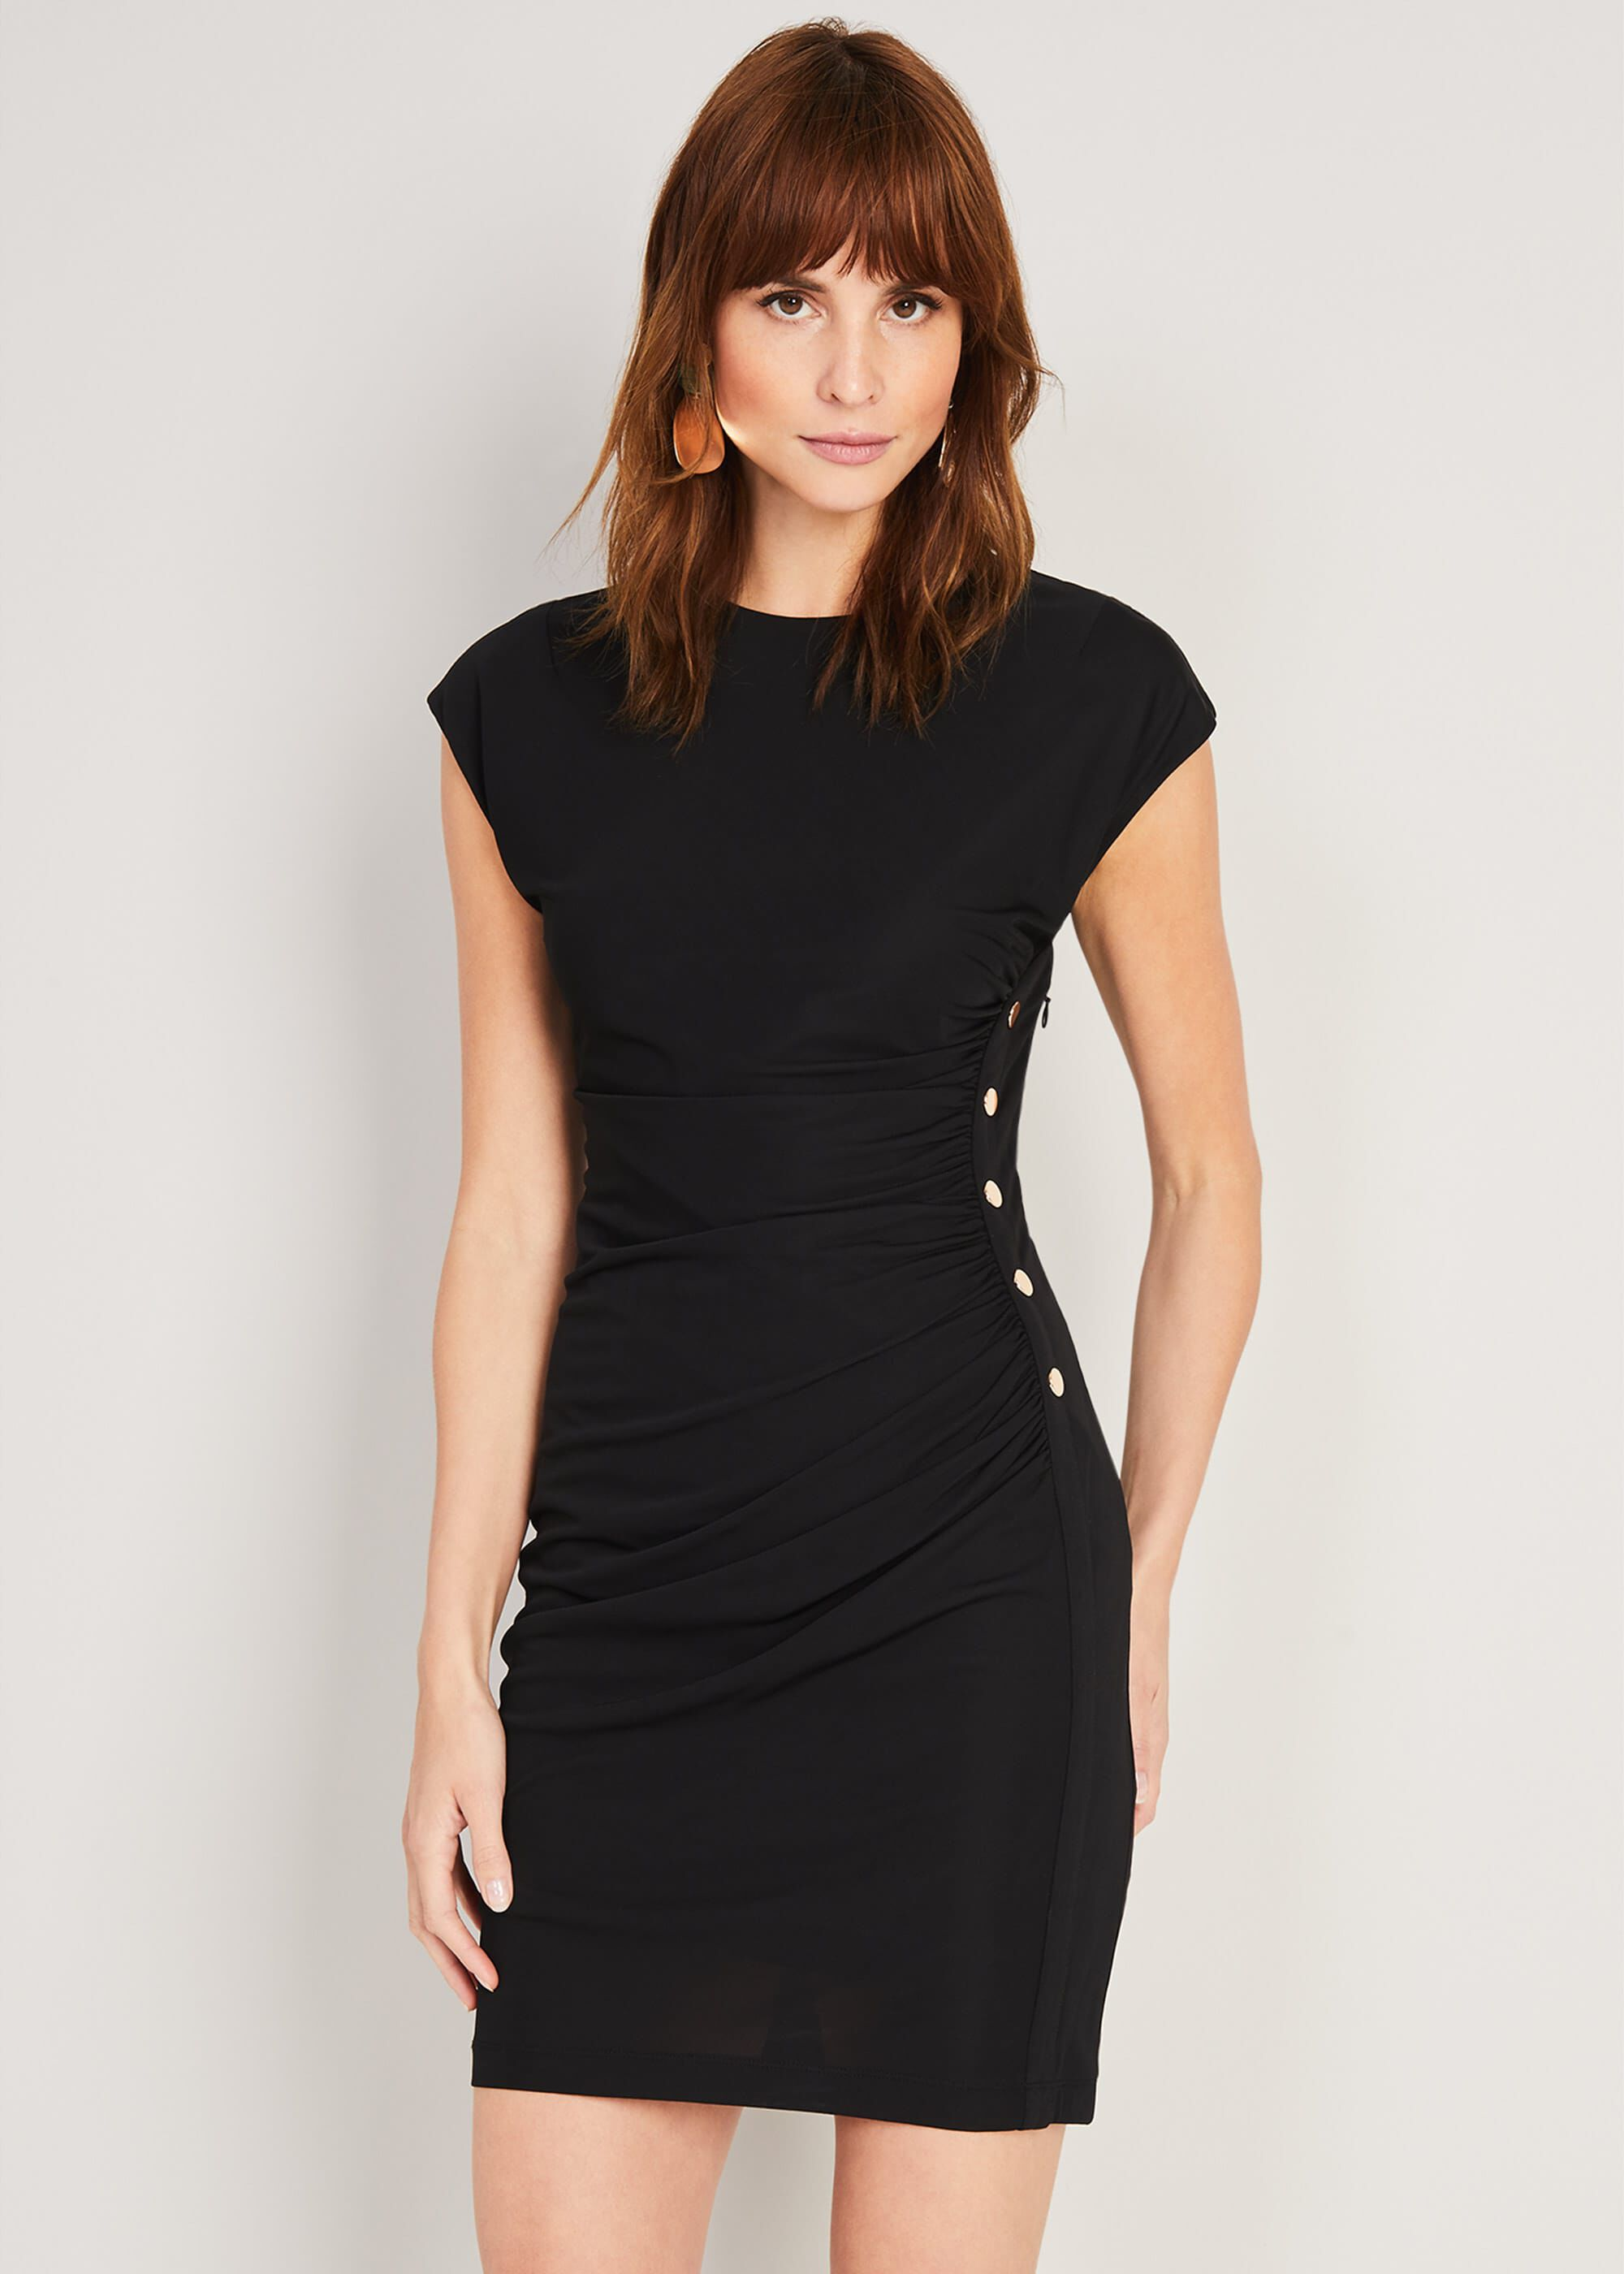 Damsel in a Dress Kimi Stud Jersey Dress, Black, Occasion Dress